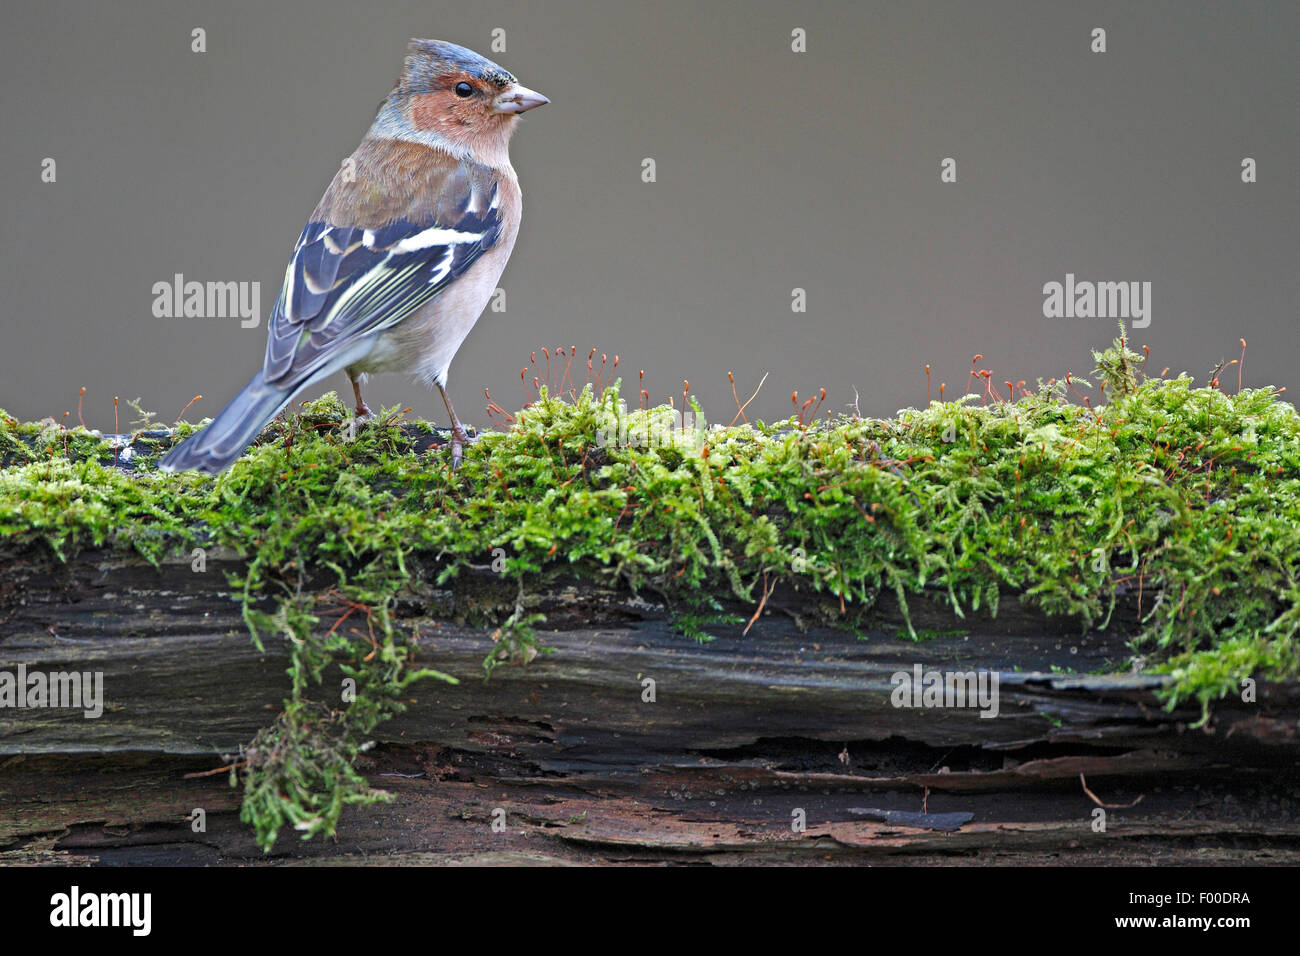 chaffinch (Fringilla coelebs), male on a rotten, mossy tree trunk, Belgium - Stock Image